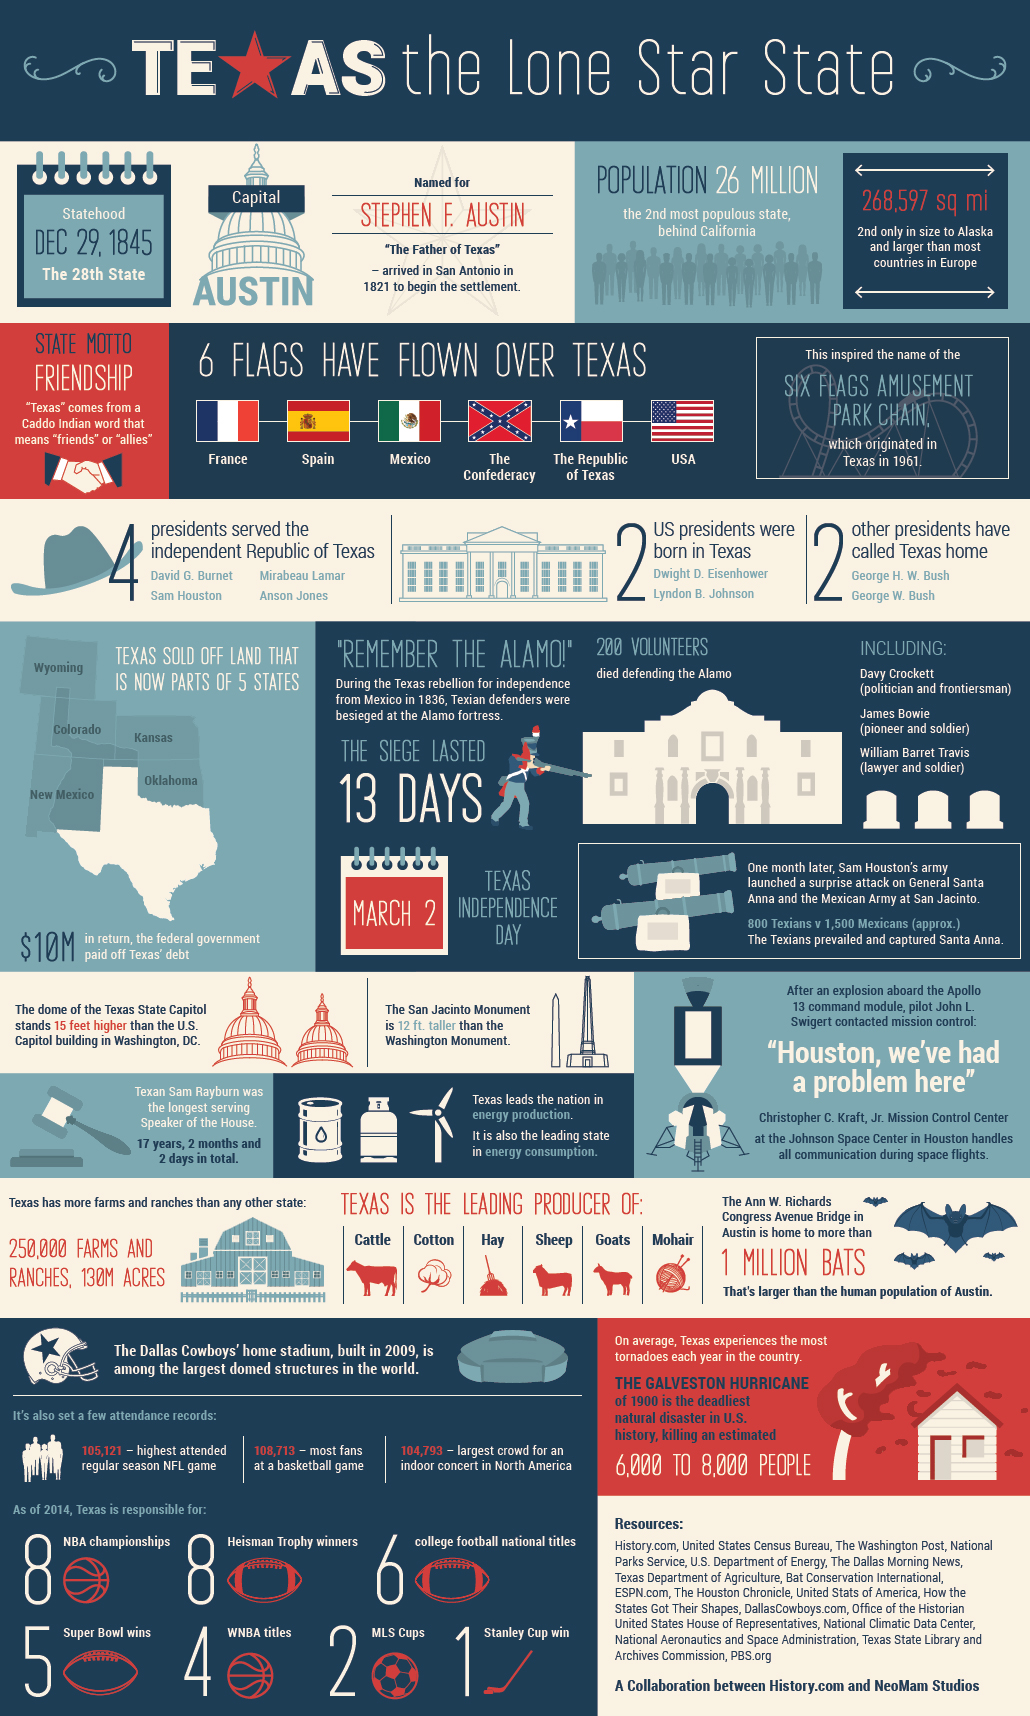 The Texas infographic